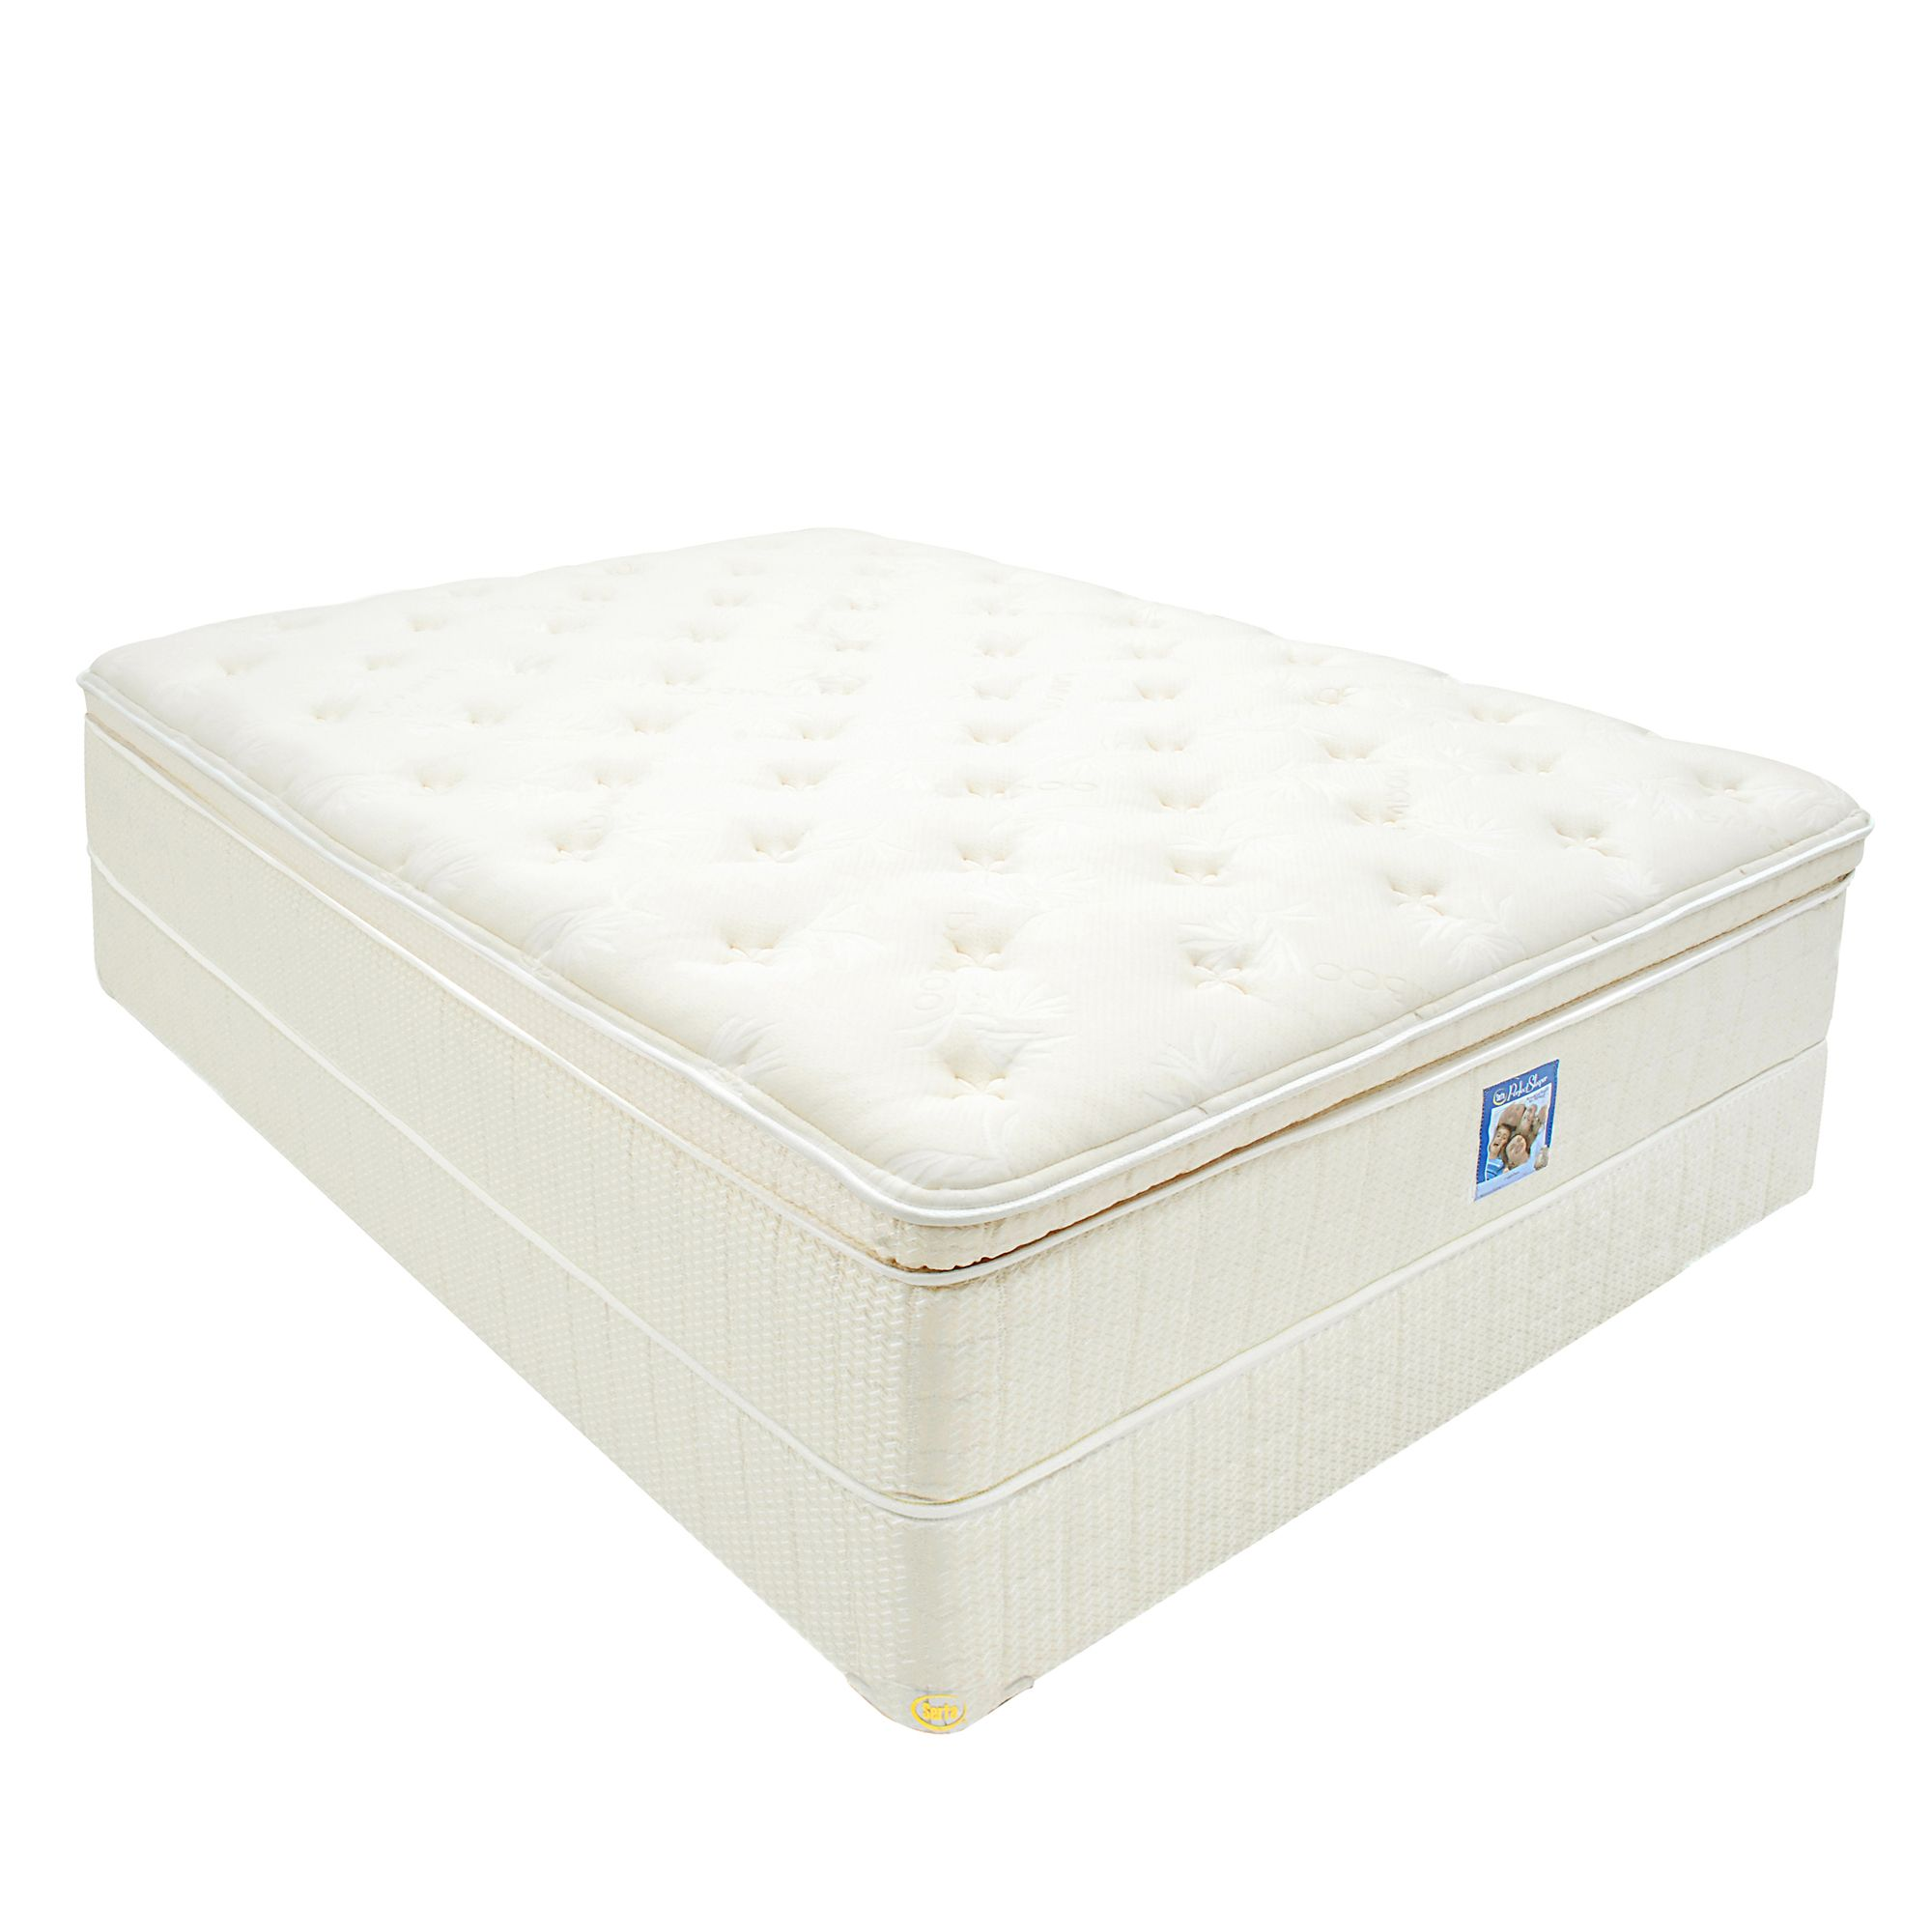 Reese-Limited-Firm-EuroTop-Queen-Mattress